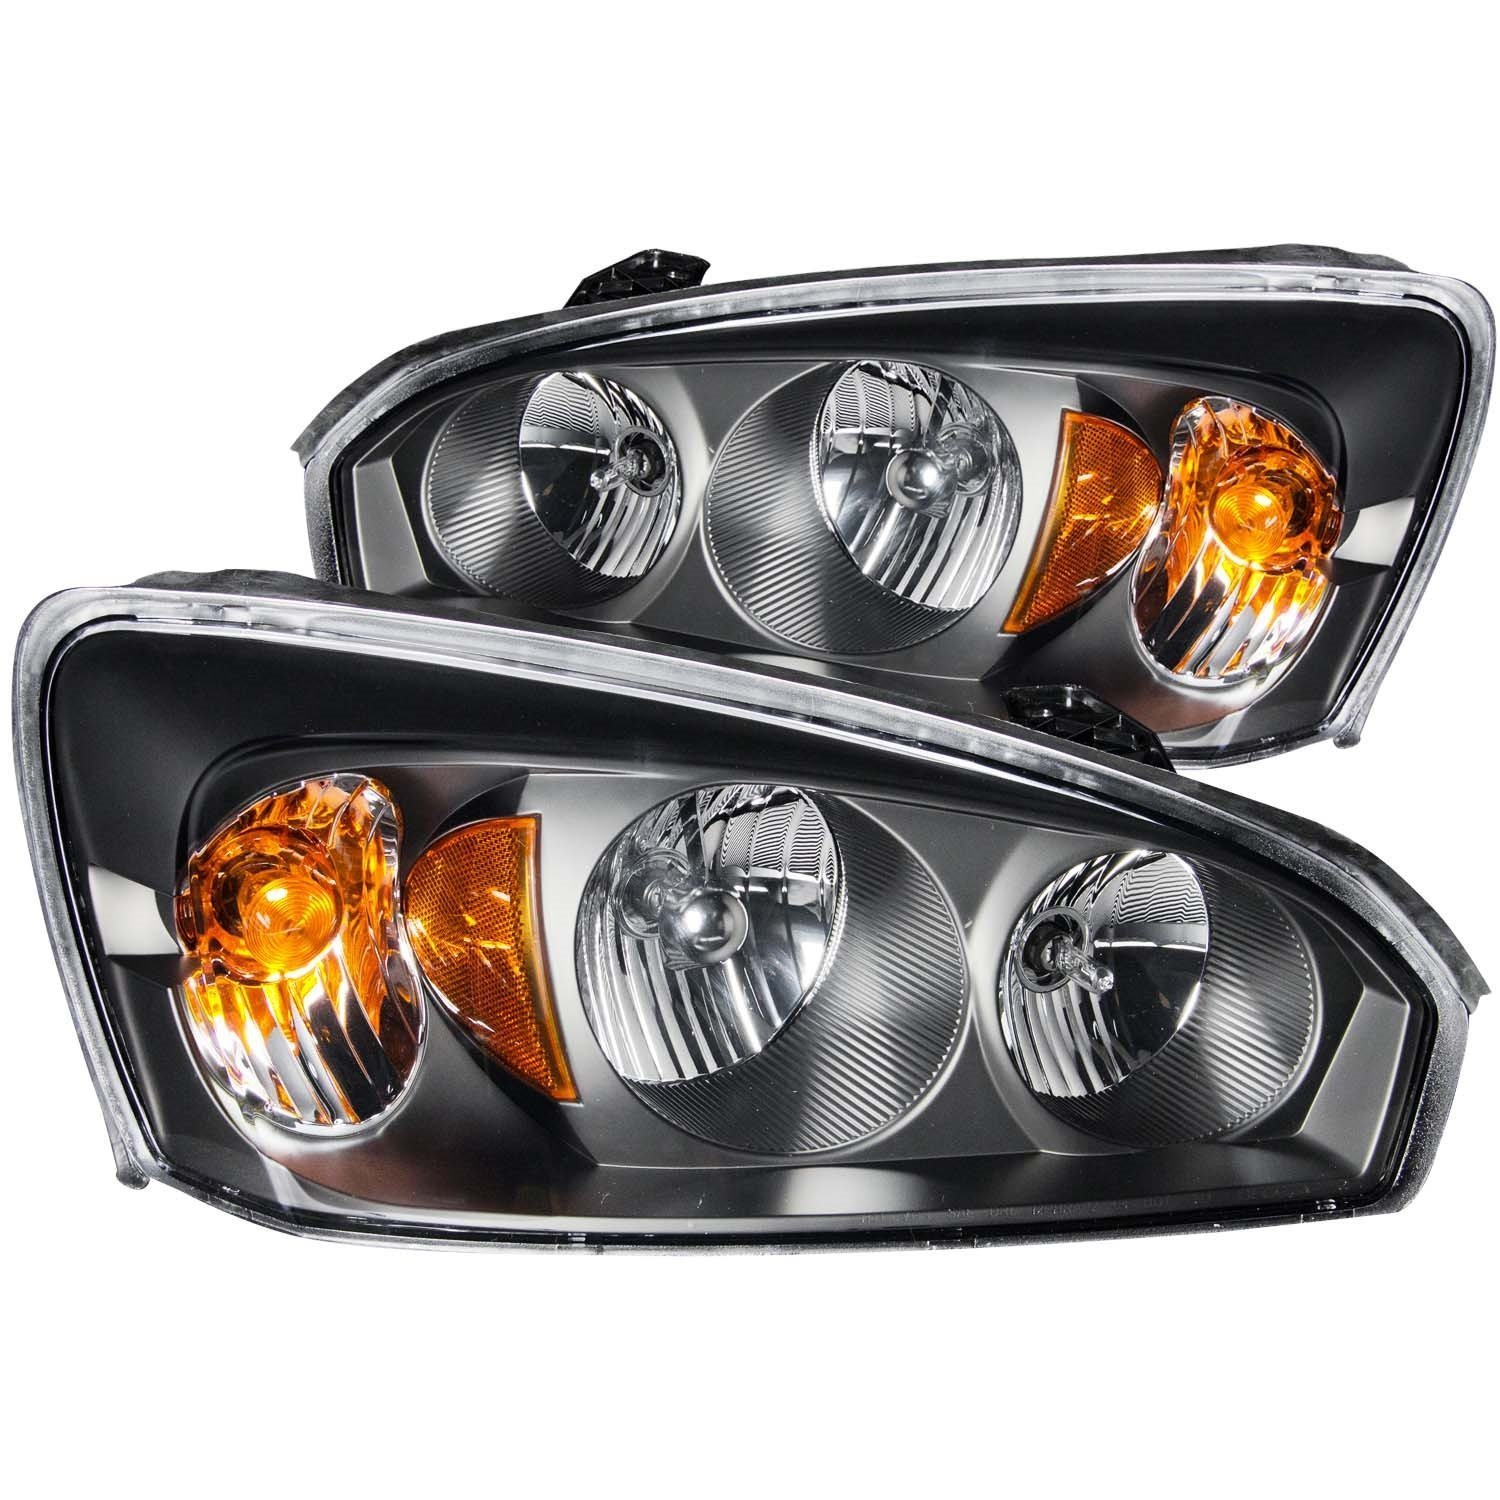 Amazon com 2004 2007 chevy malibu headlights lamps 8 led fog bumper light automotive